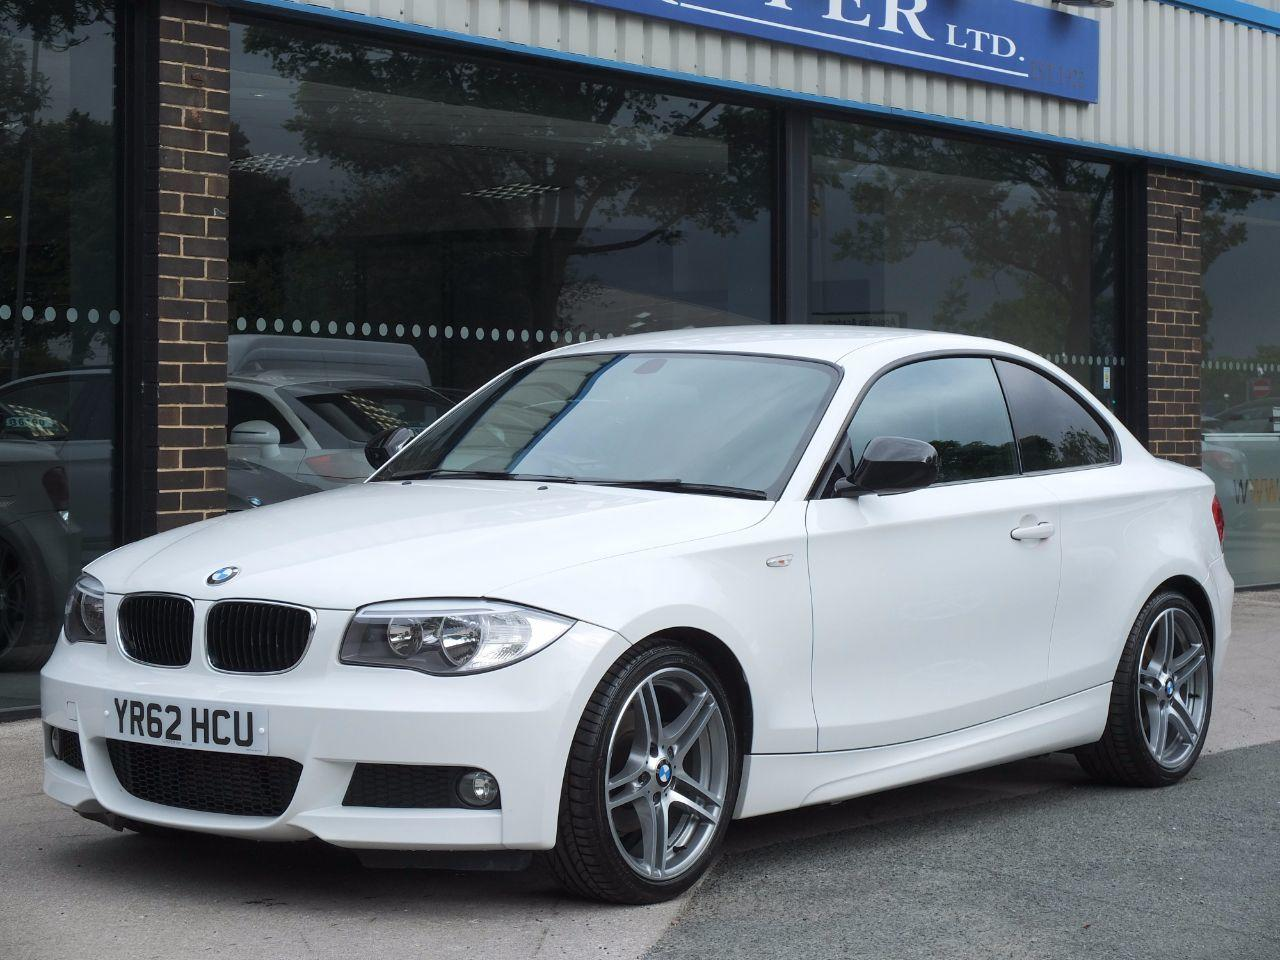 BMW 1 Series 2.0 118d Sport Plus Edition Coupe Coupe Diesel Alpine WhiteBMW 1 Series 2.0 118d Sport Plus Edition Coupe Coupe Diesel Alpine White at fa Roper Ltd Bradford